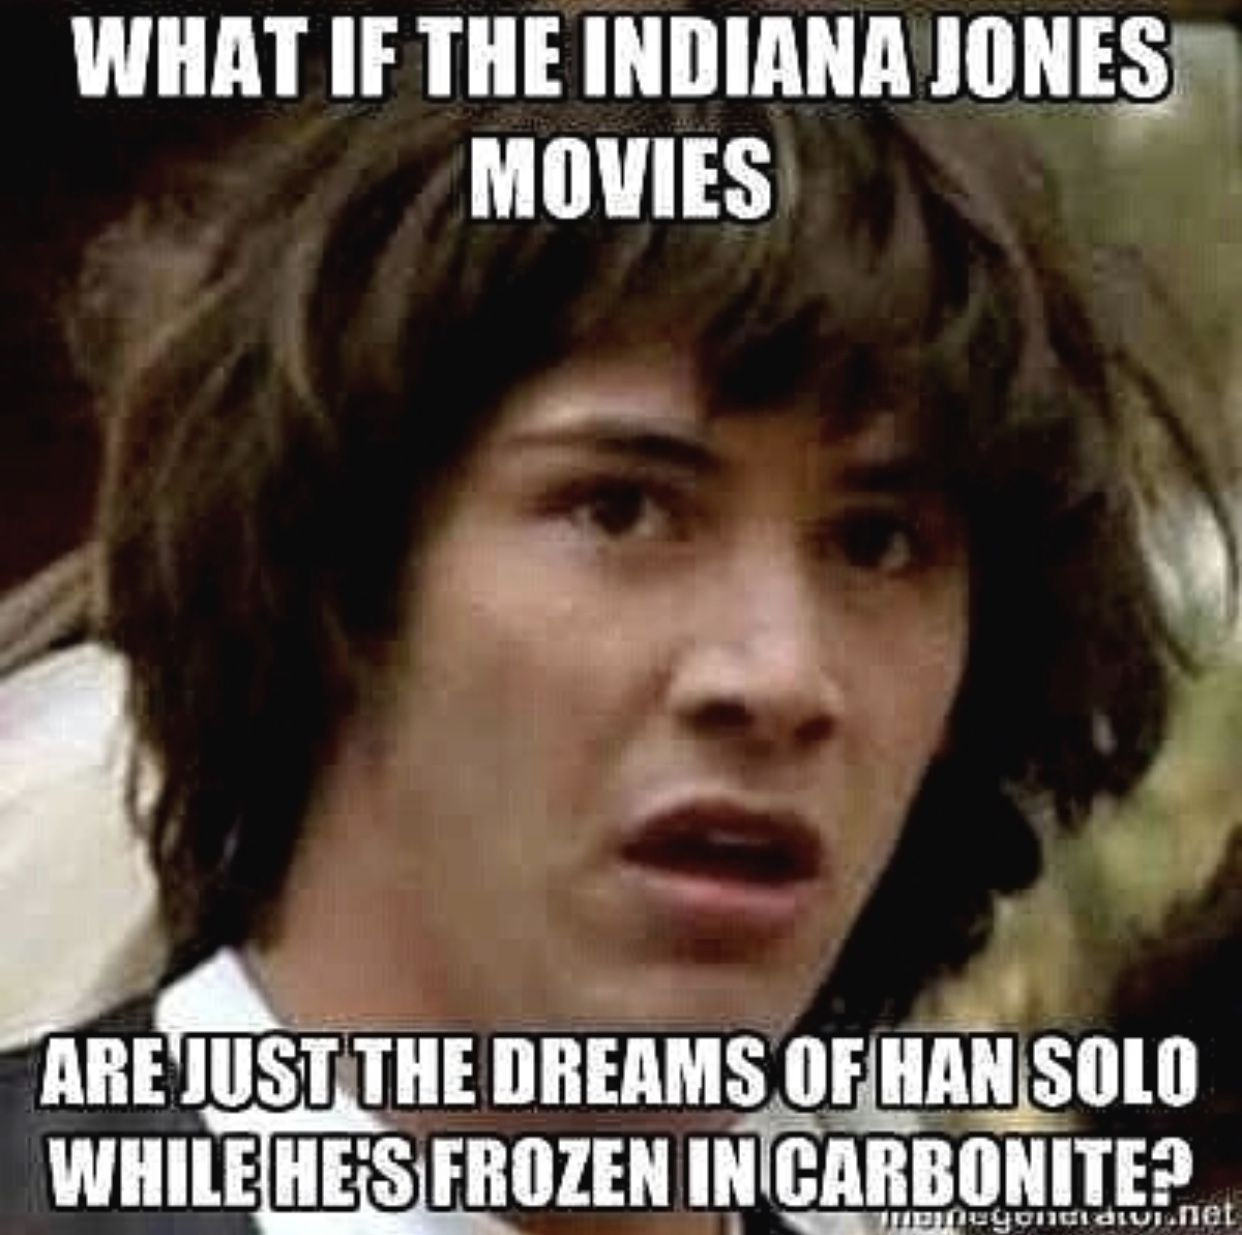 Star Wars Deep Thoughts Memes Love It Cool Geeky Star Wars Memes Behind The Scenes Star Wars Fans